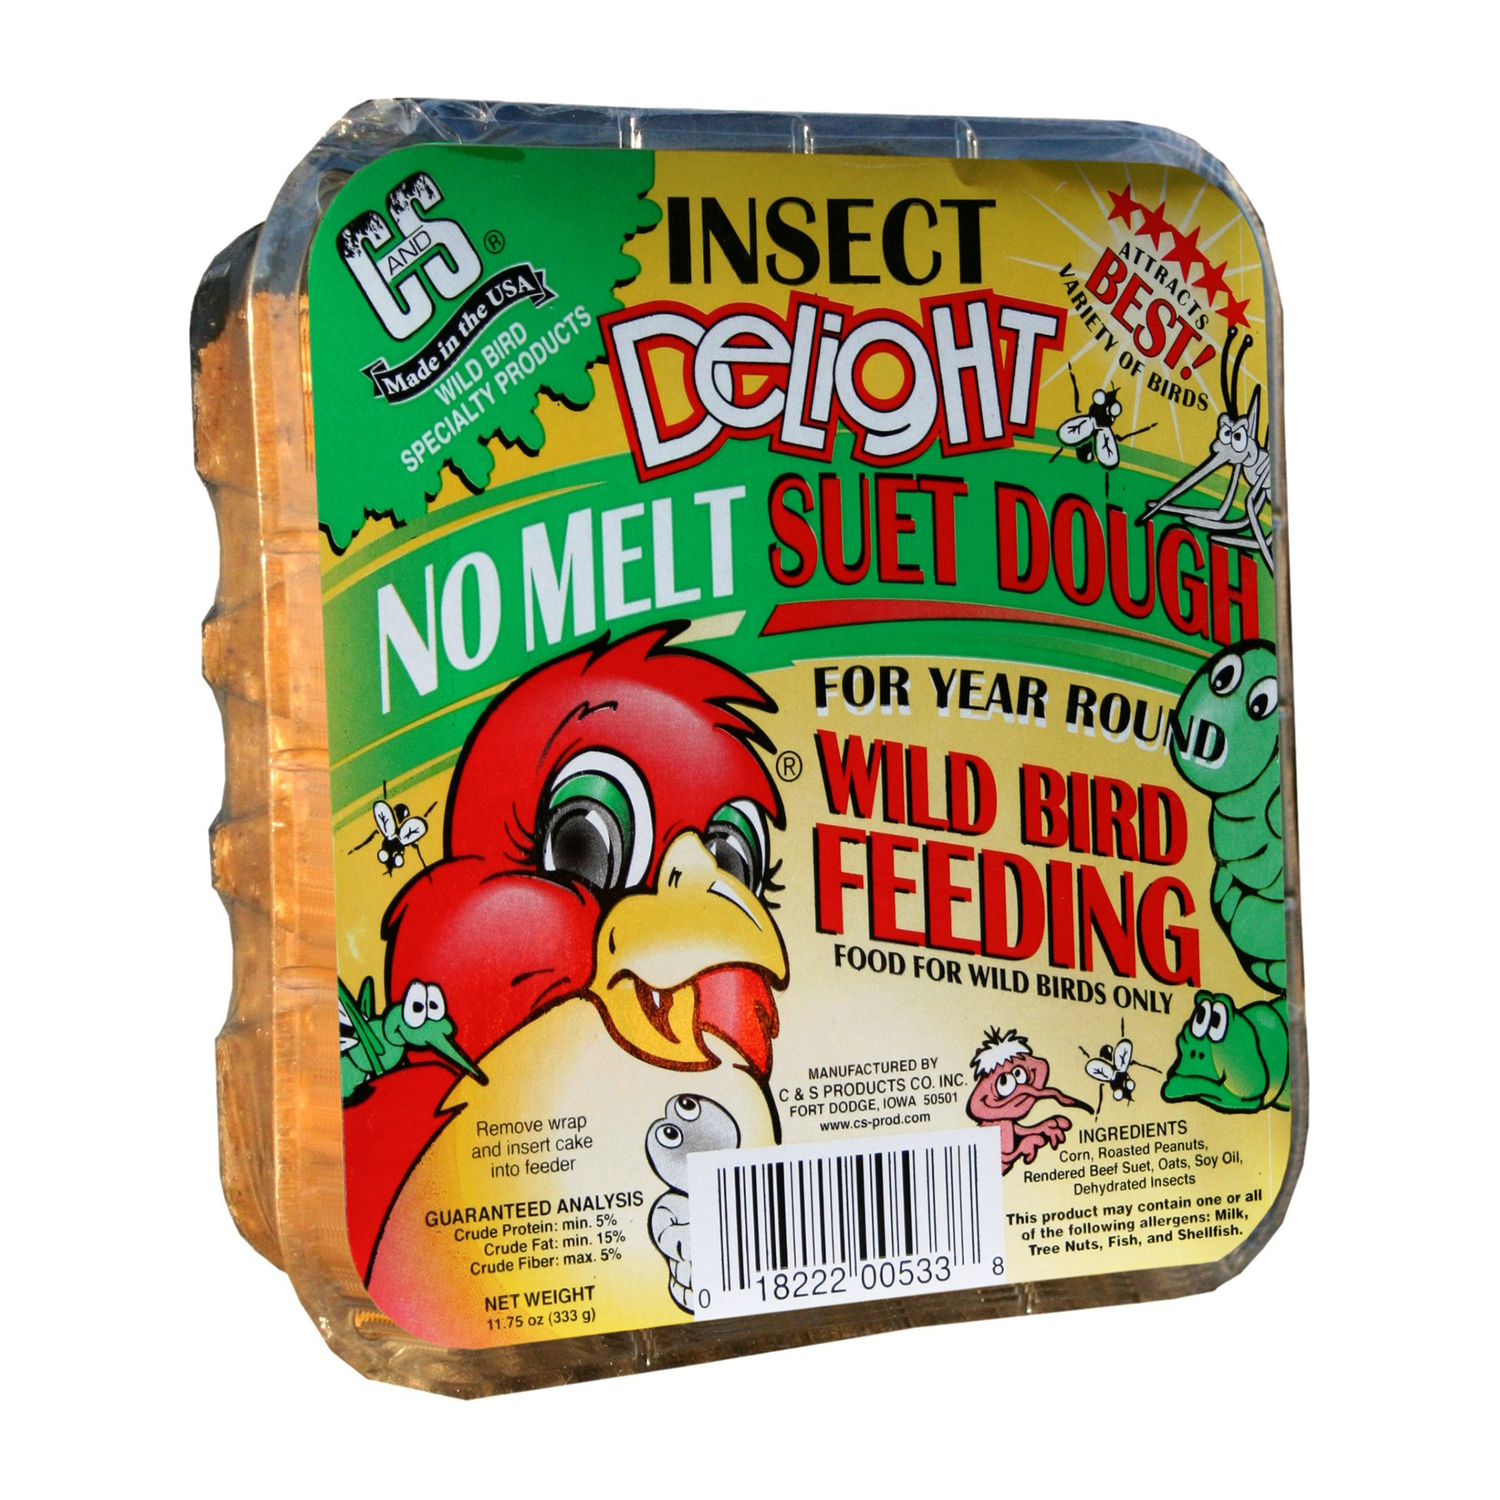 C&S Products  Insect Delight  Assorted Species  Suet  Beef Suet  11.75 oz.